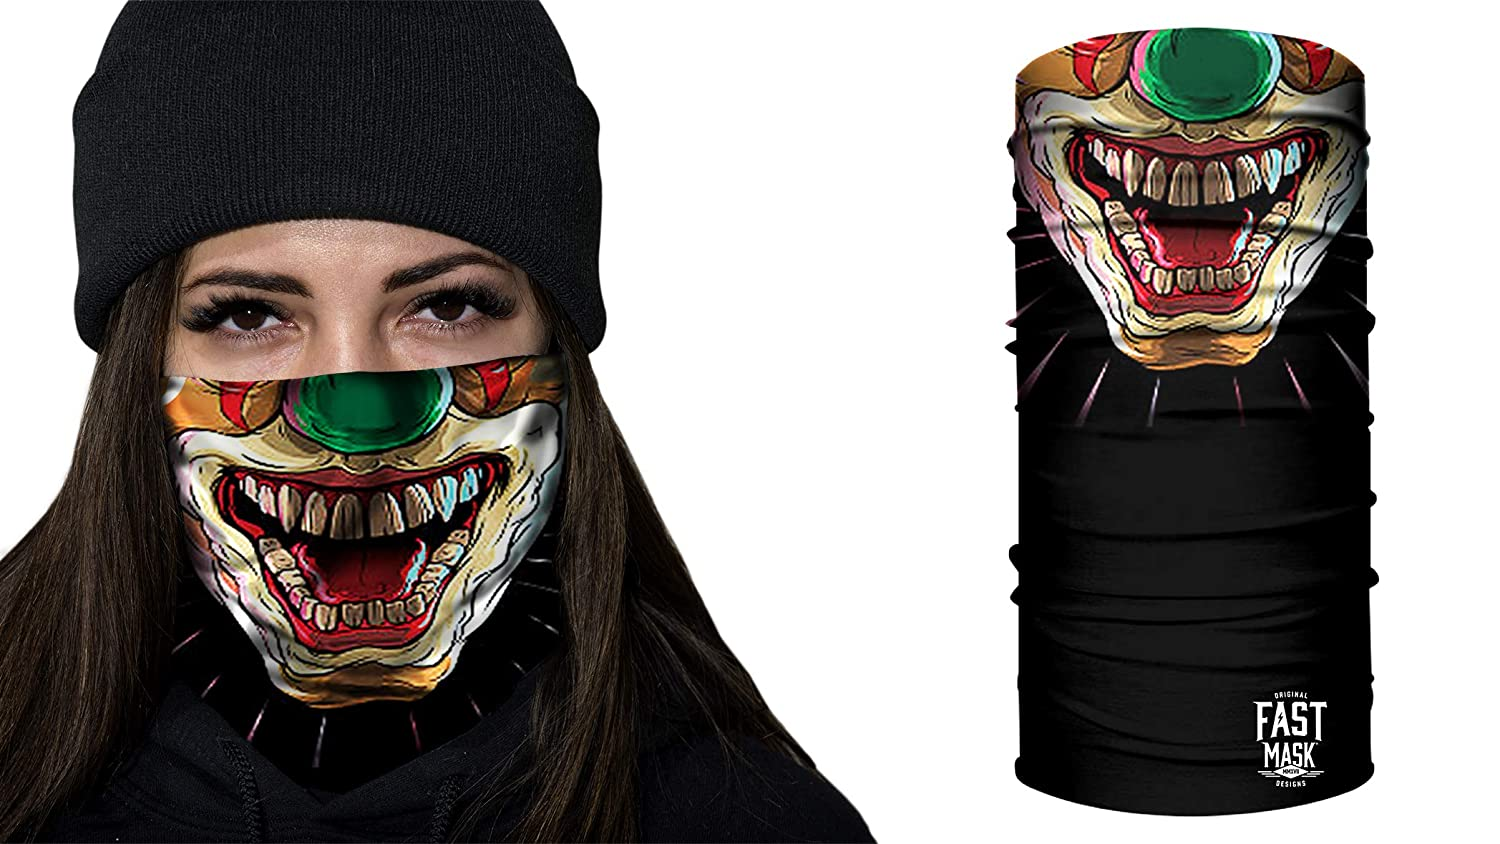 Fast Mask Face Shield Unisex - Scary Clown